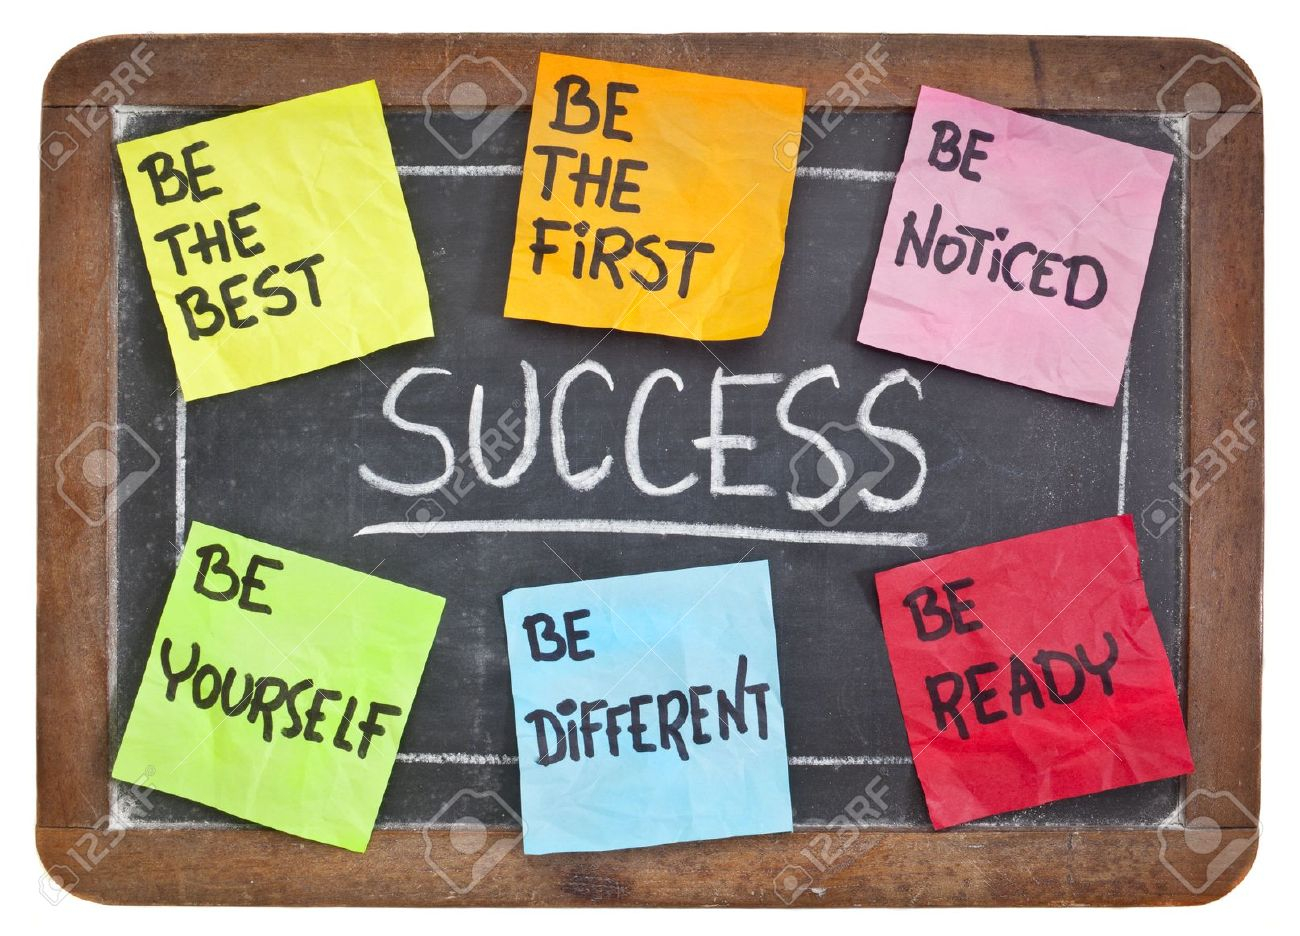 14461873 how to successful concept on a blackboard be the first the best different yourself noticed ready Stock Photo